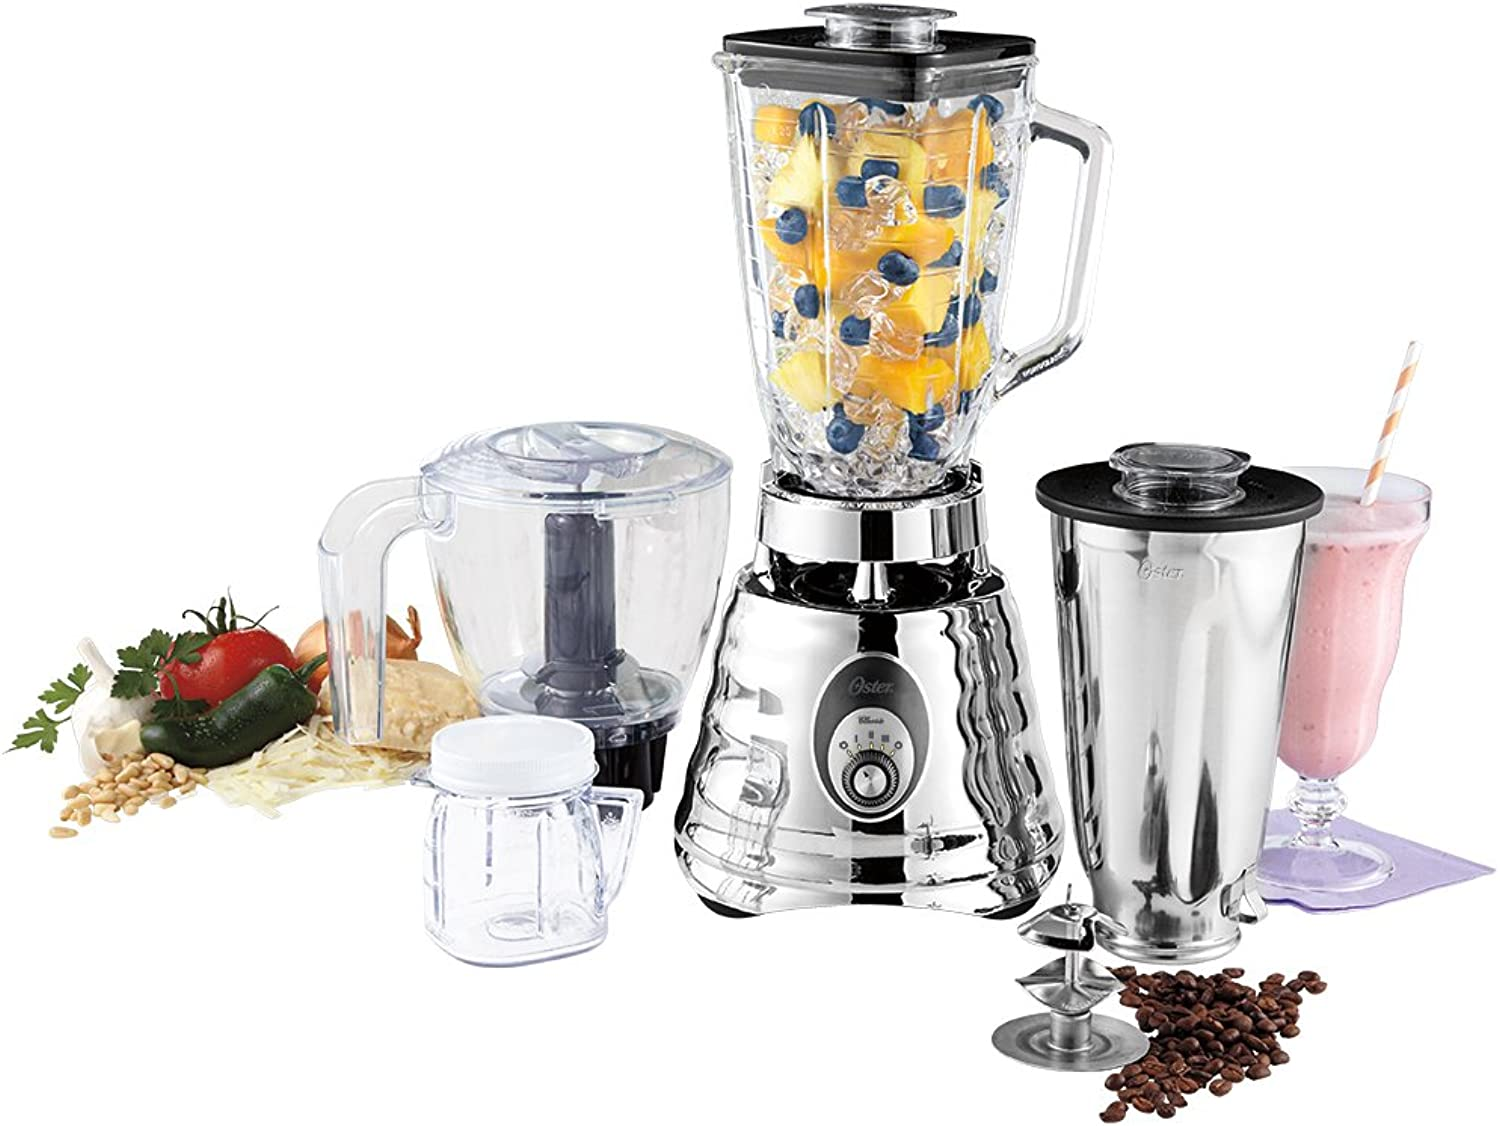 Oster BLSTBC4129 Kitchen Center Beehive blender,  Silver